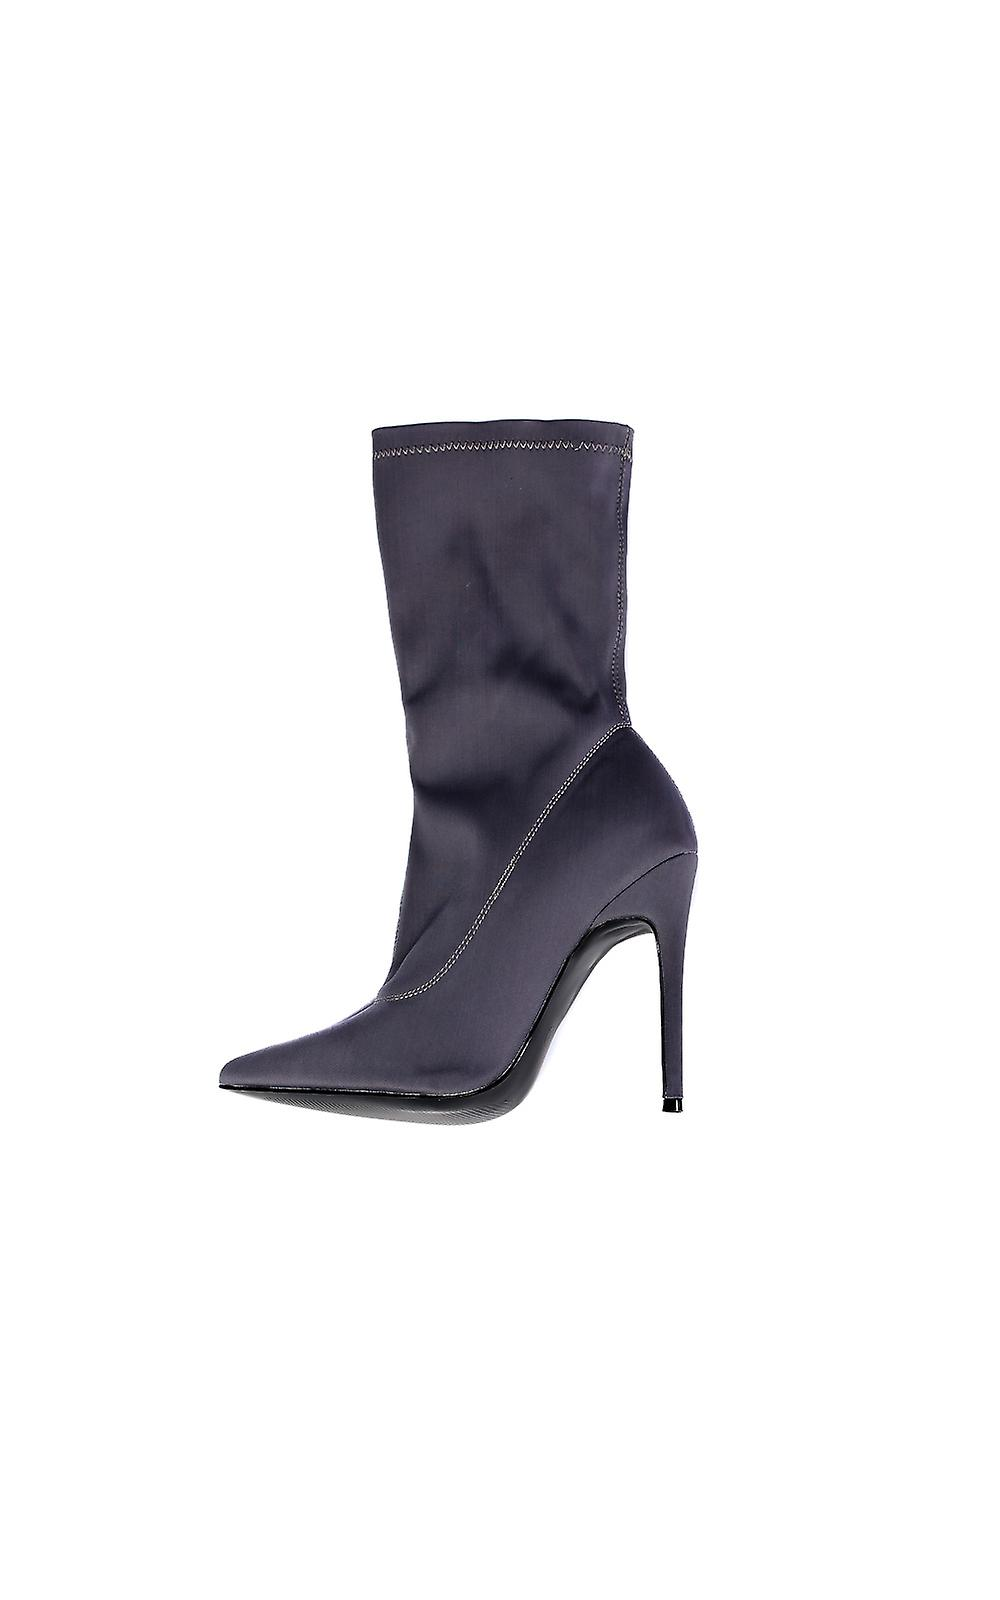 IKRUSH Womens Cassie Stretch Ankle Boots